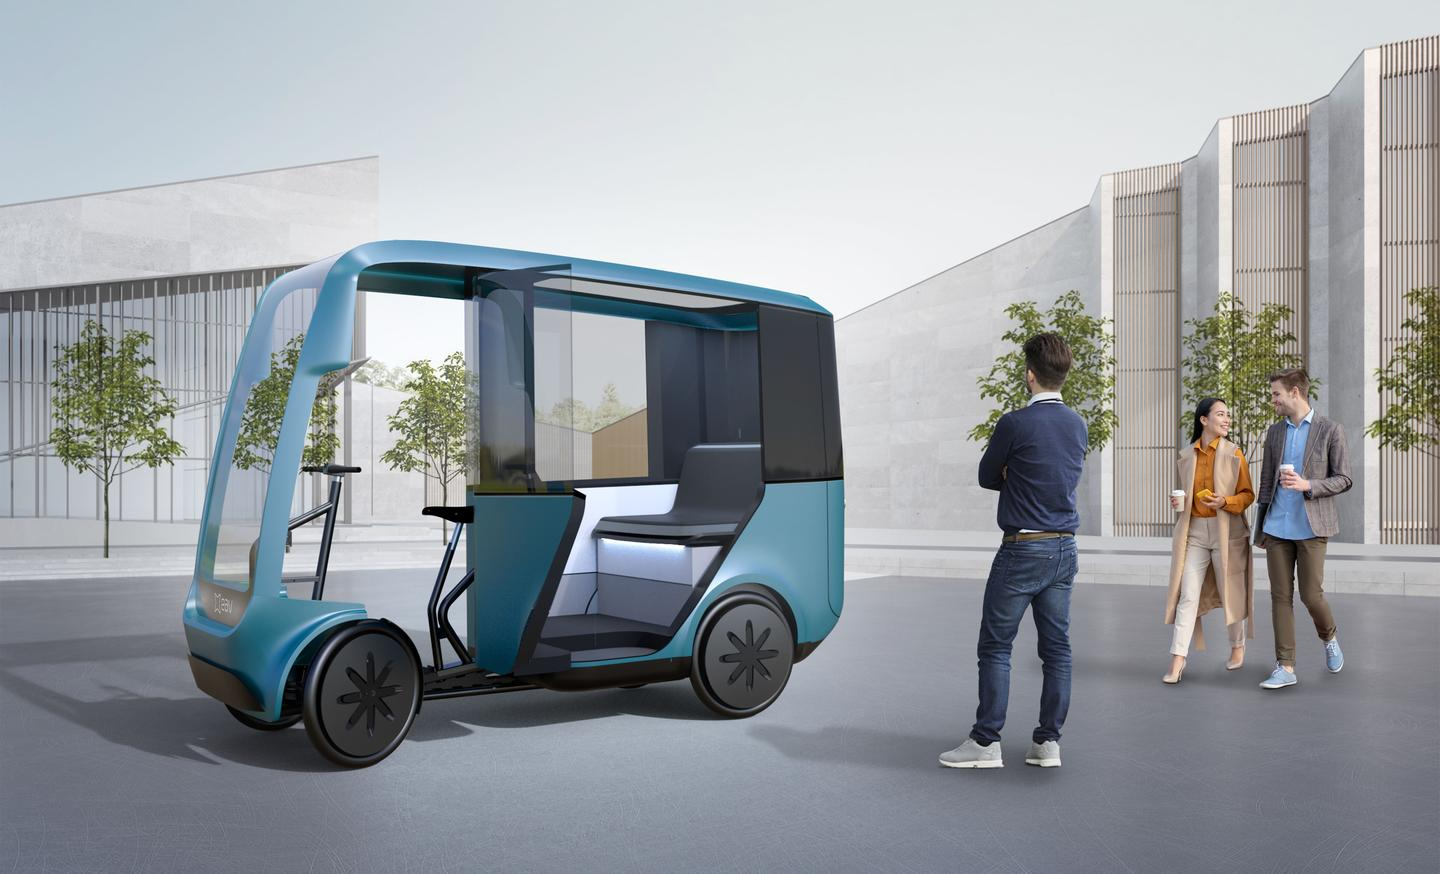 The first prototype EAV Taxi is set to be produced in November 2020